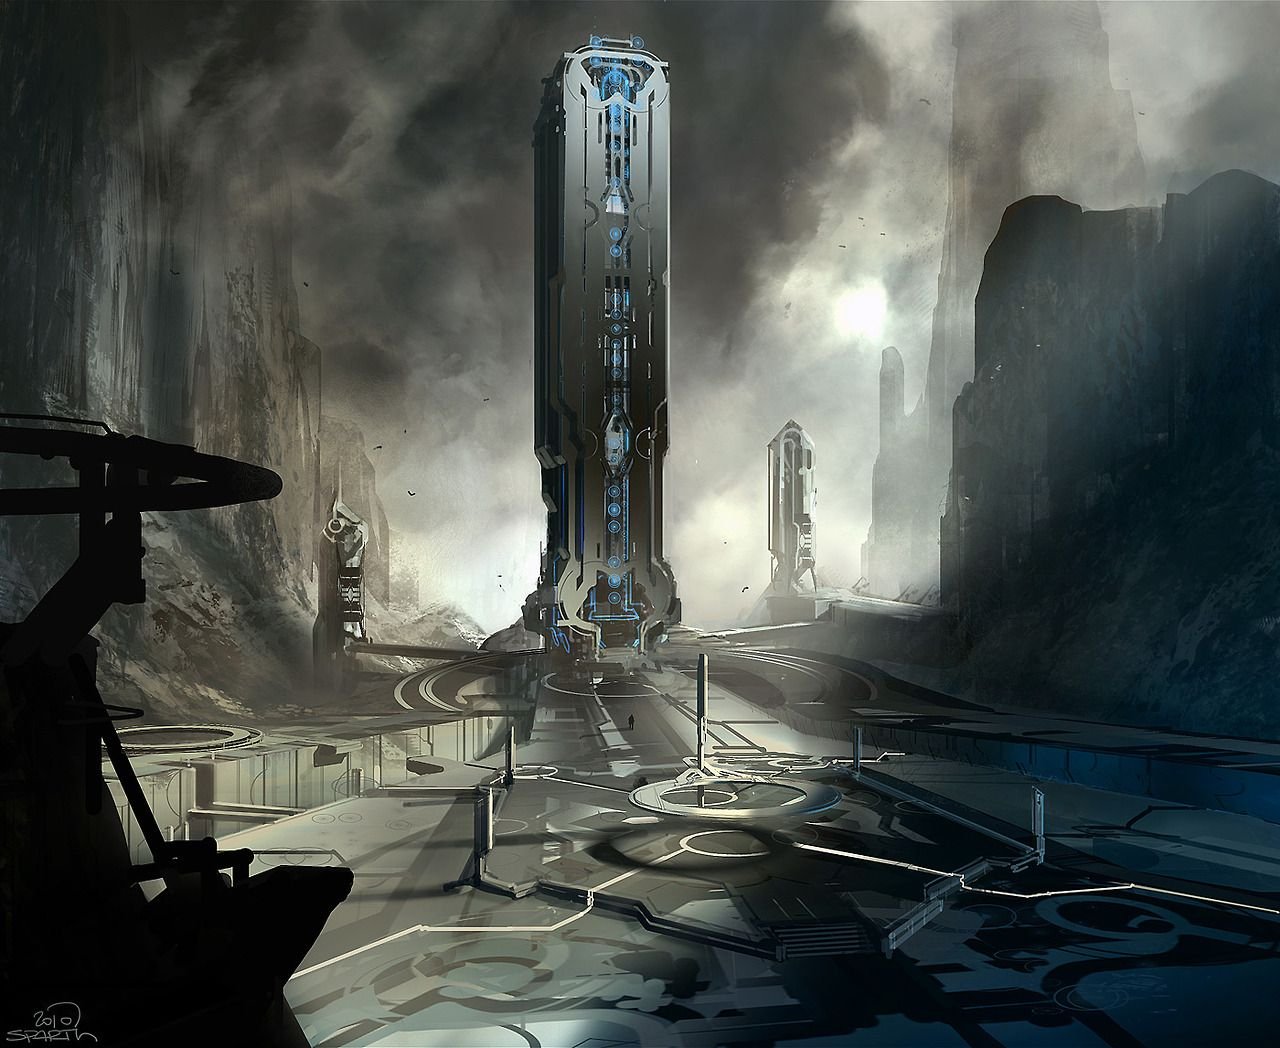 halo 4 - early 2010 forerunner architecture concept. microsoft - 343